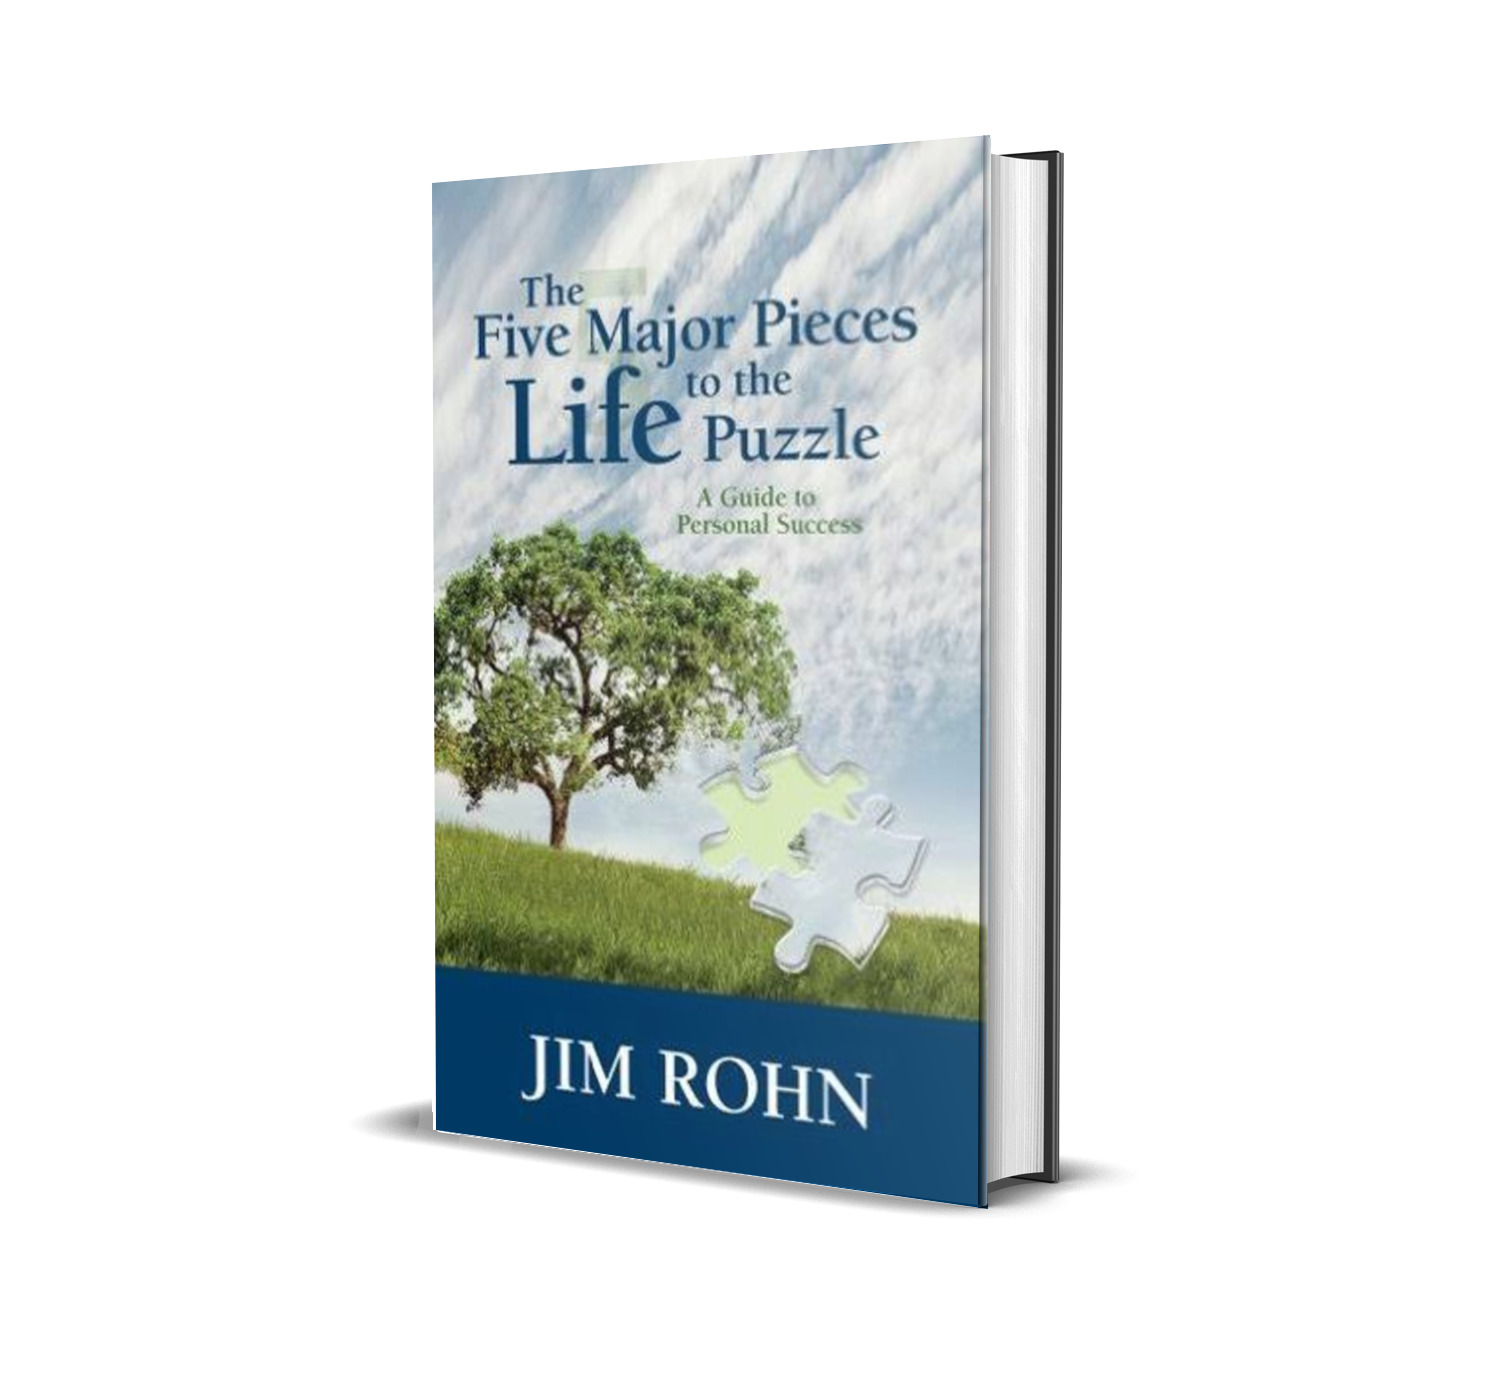 The five major pieces to the life puzzle- Jim Rohn